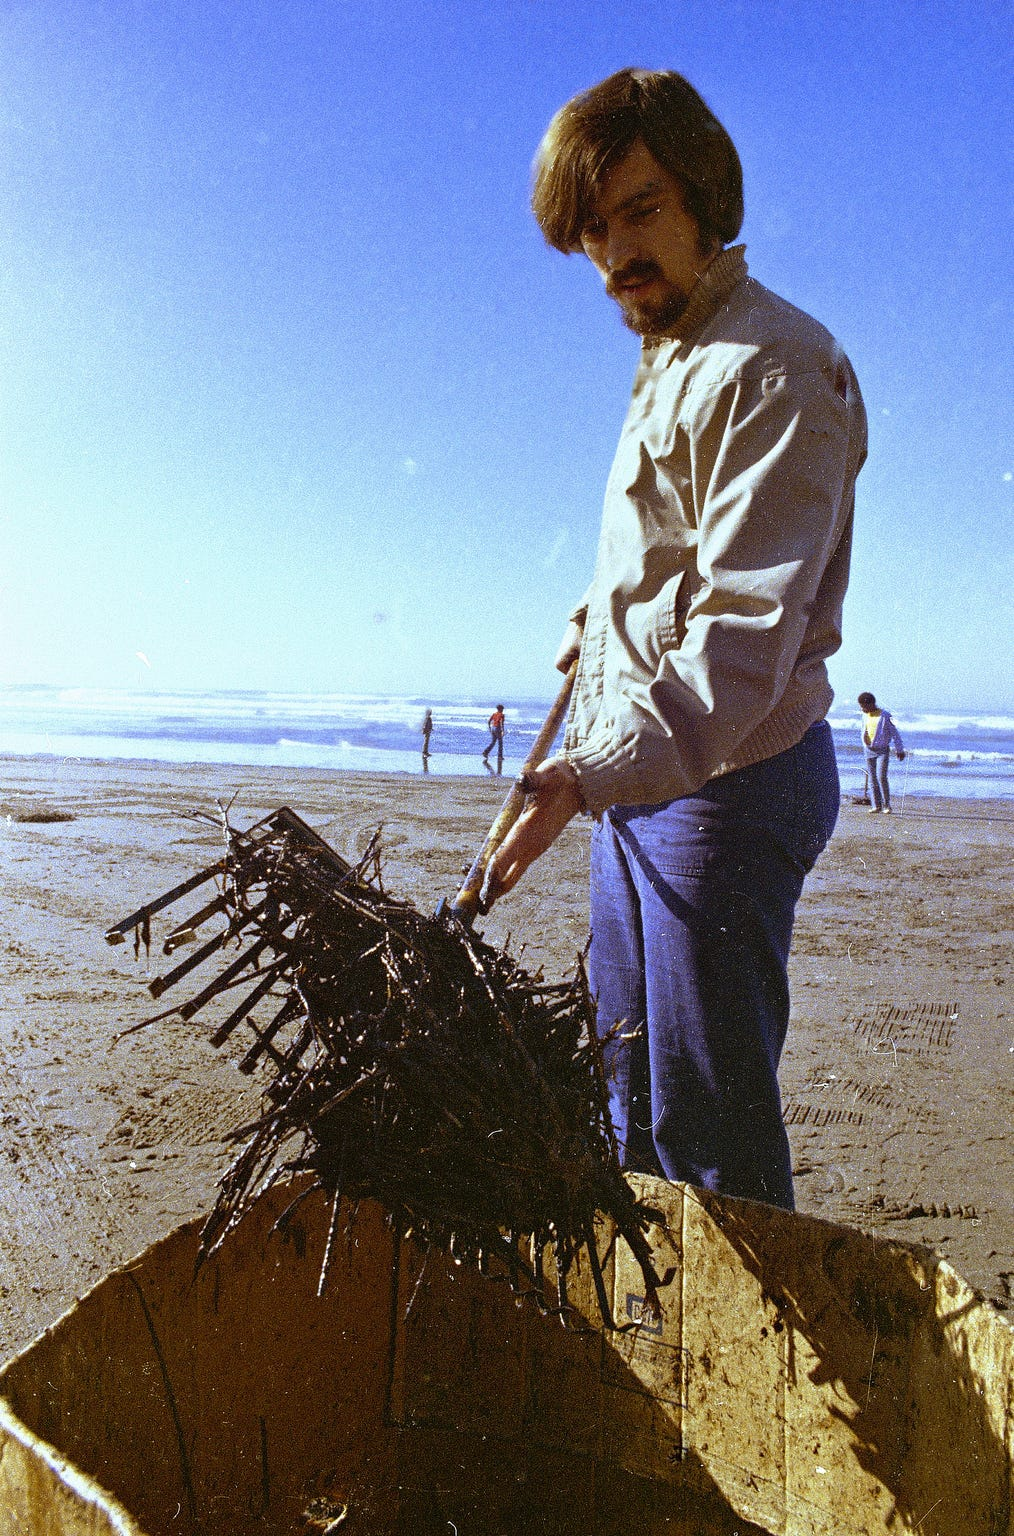 A workman using a pitchfork helps during the cleanup of oil-soaked straw from the beach at Santa Barbara Harbor in California on Feb. 7, 1969.  The oil, leaking from an off-shore well for over a week, covered local beaches and threatened many Southern California shoreline areas.  (AP Photo)